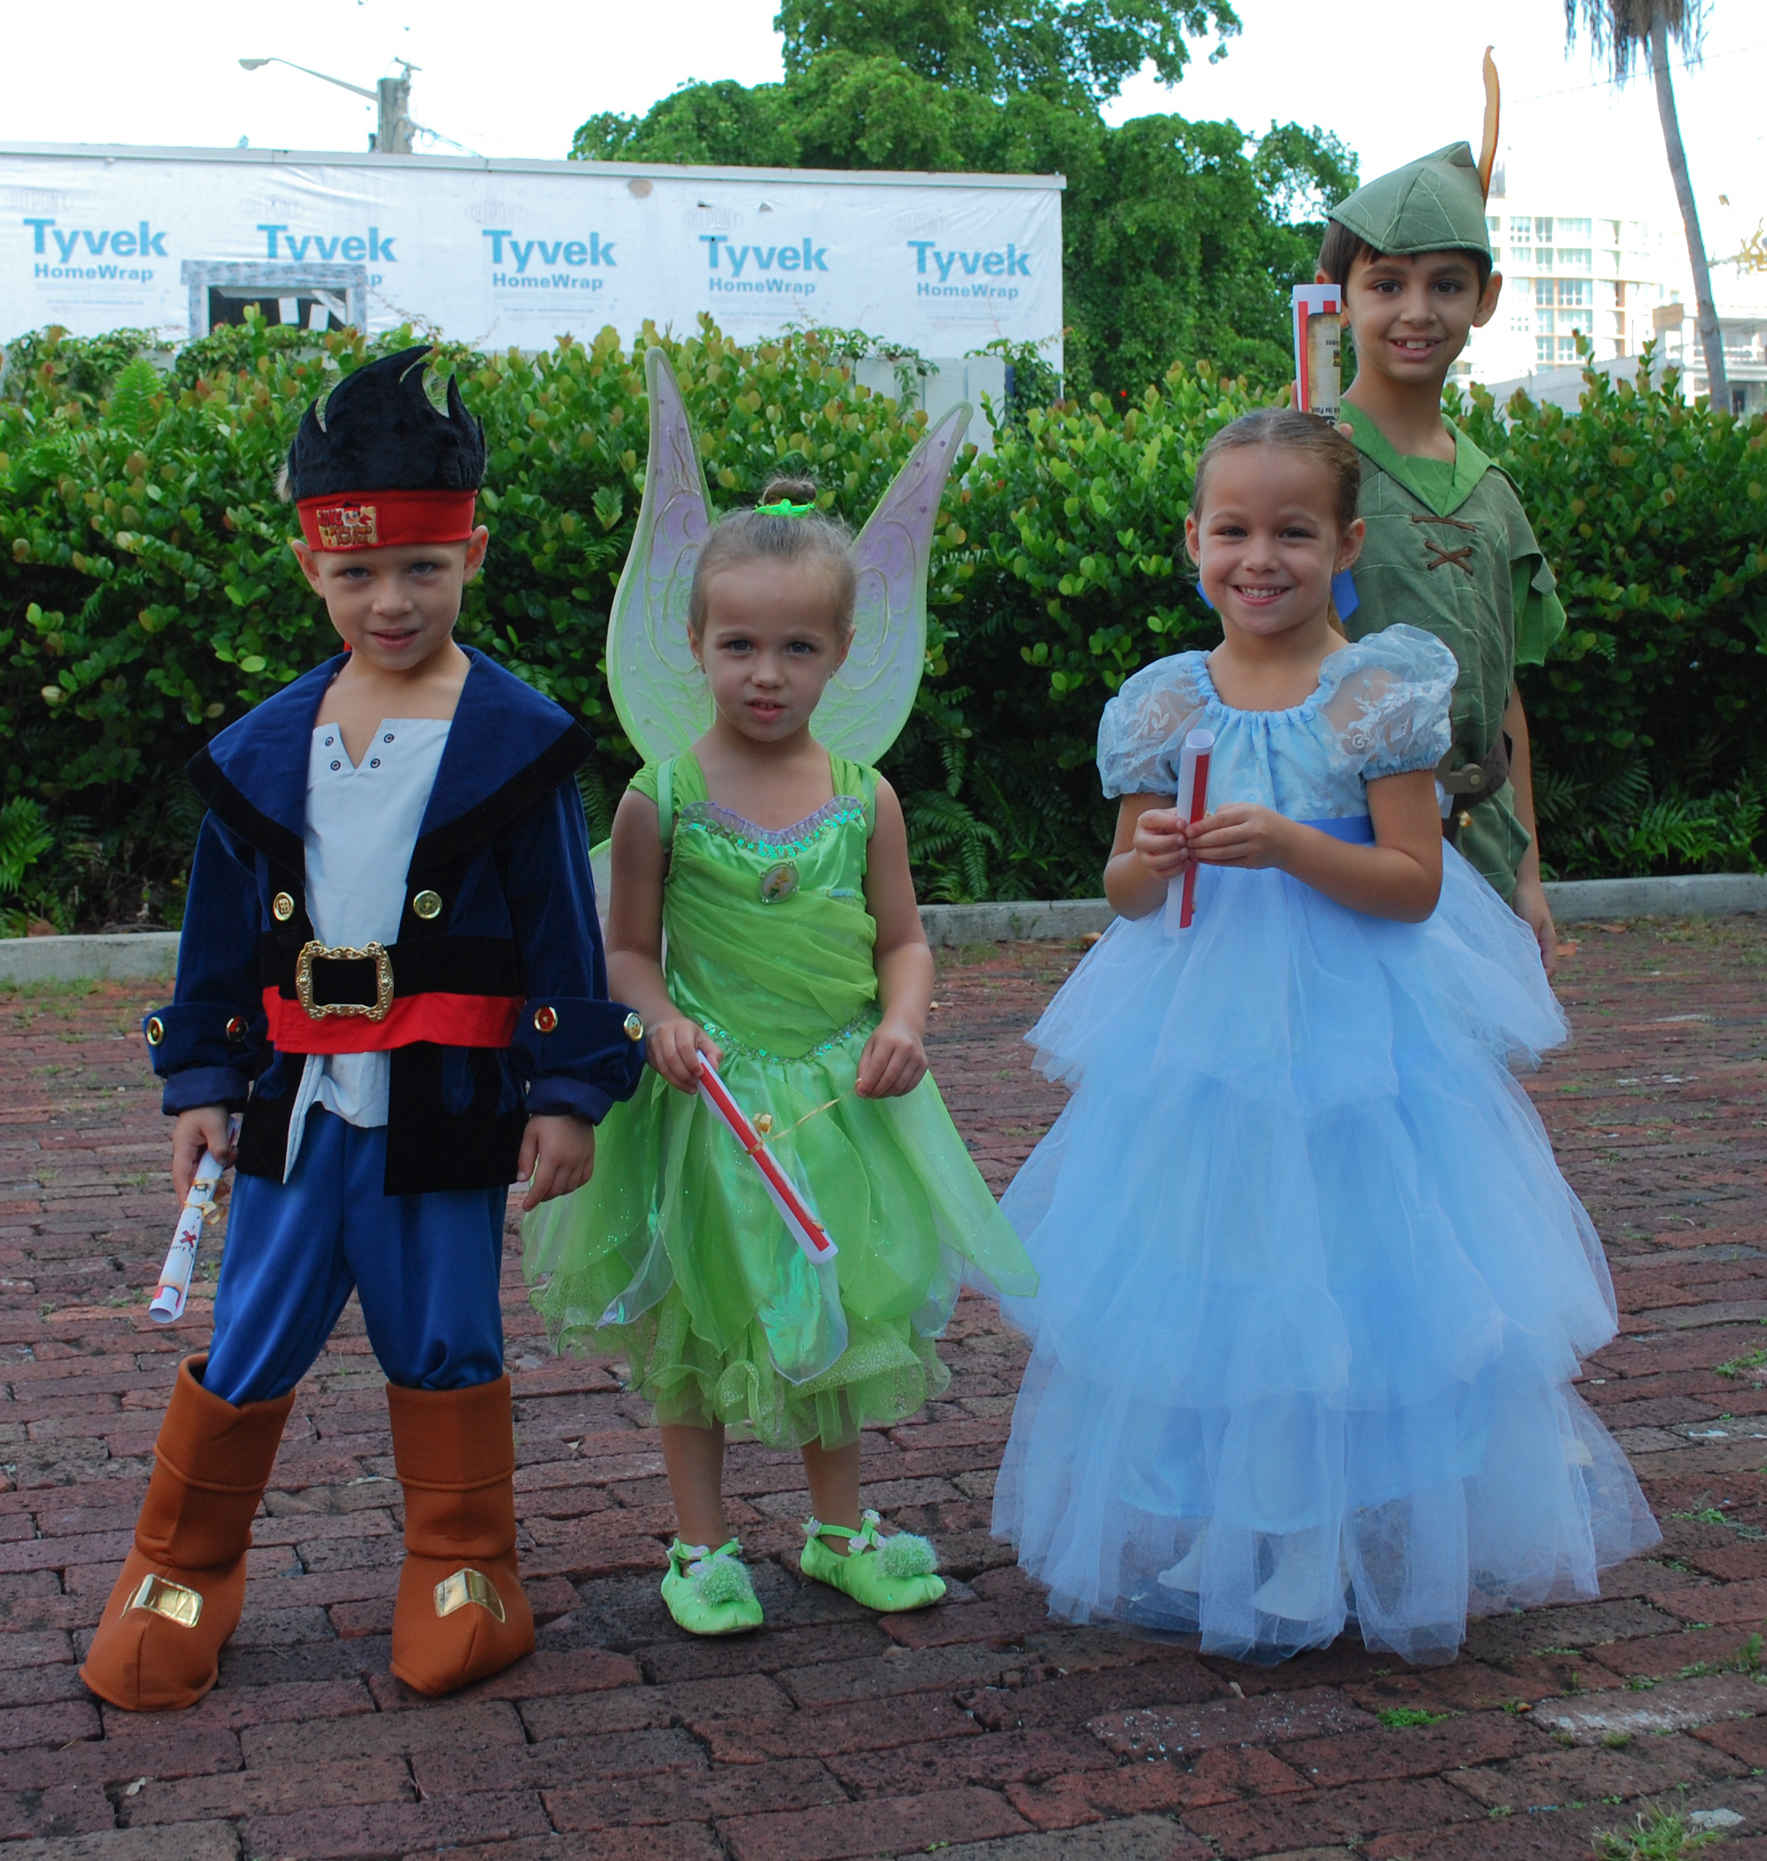 Peter Pan Pirate Party image